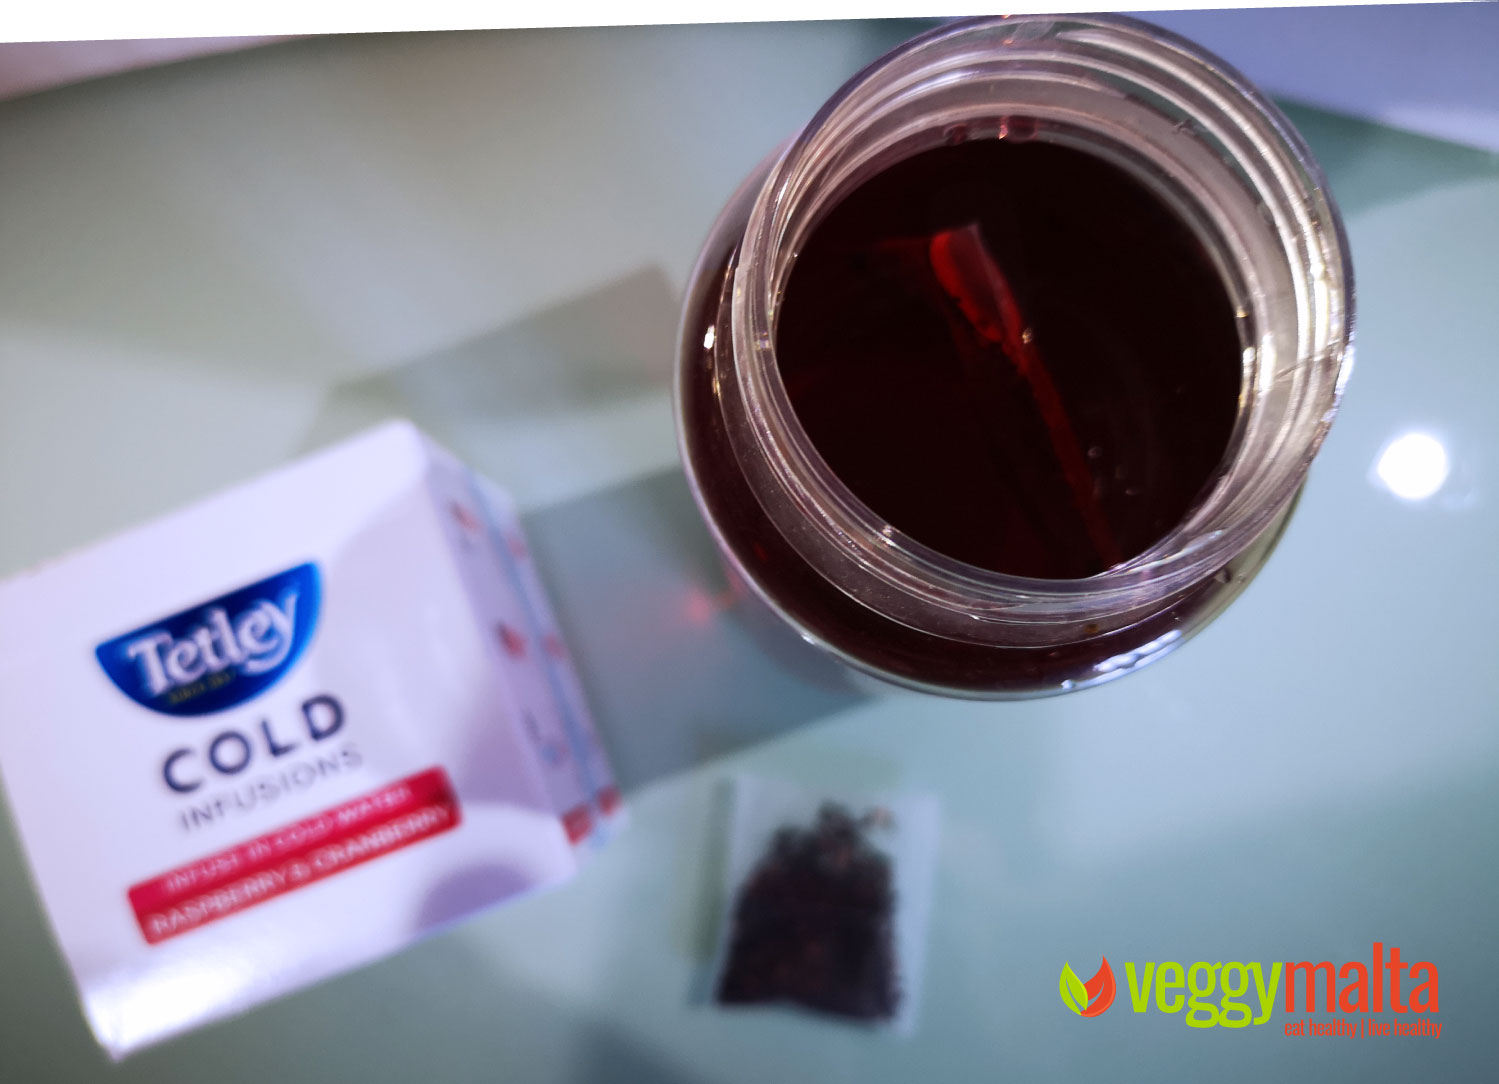 tetley-cold-infusion-raspberry